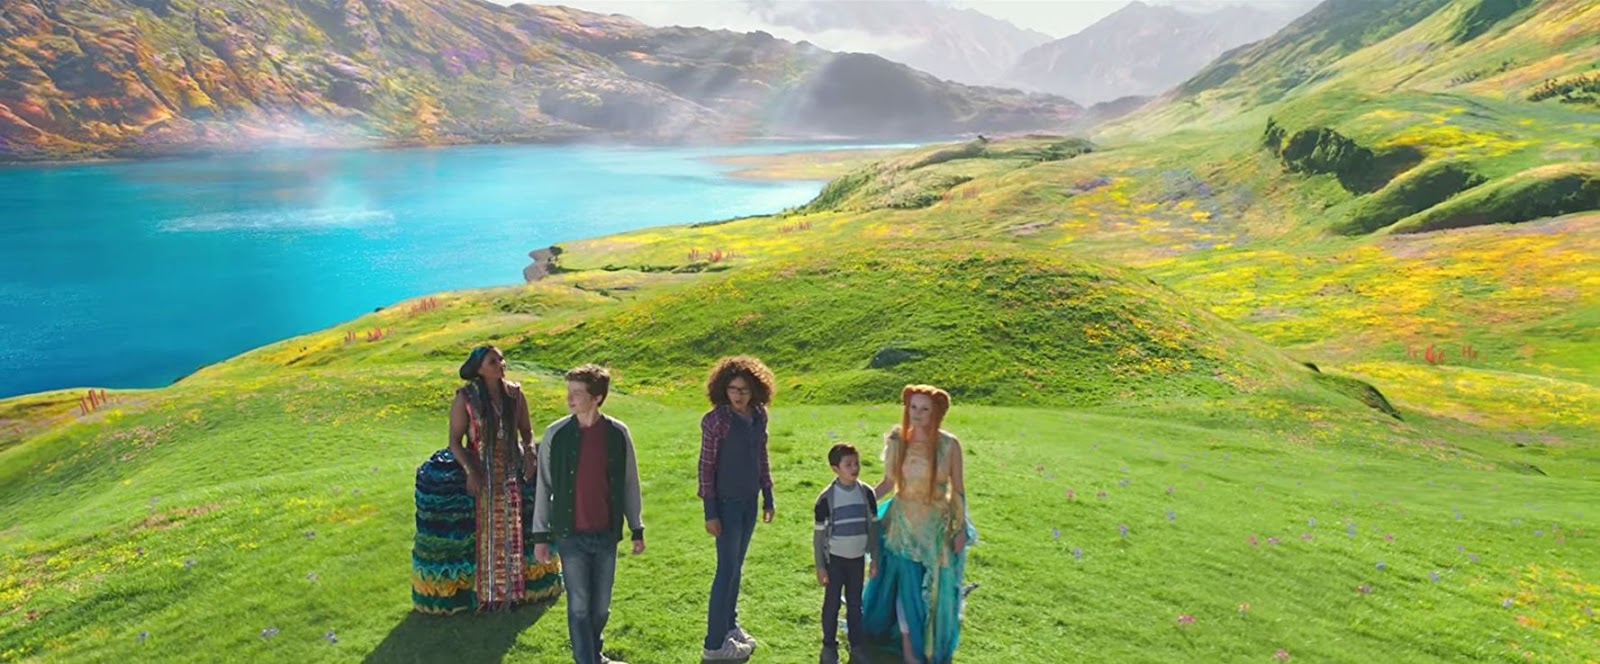 A Wrinkle in Time: My take on the movie starring Oprah Winfrey